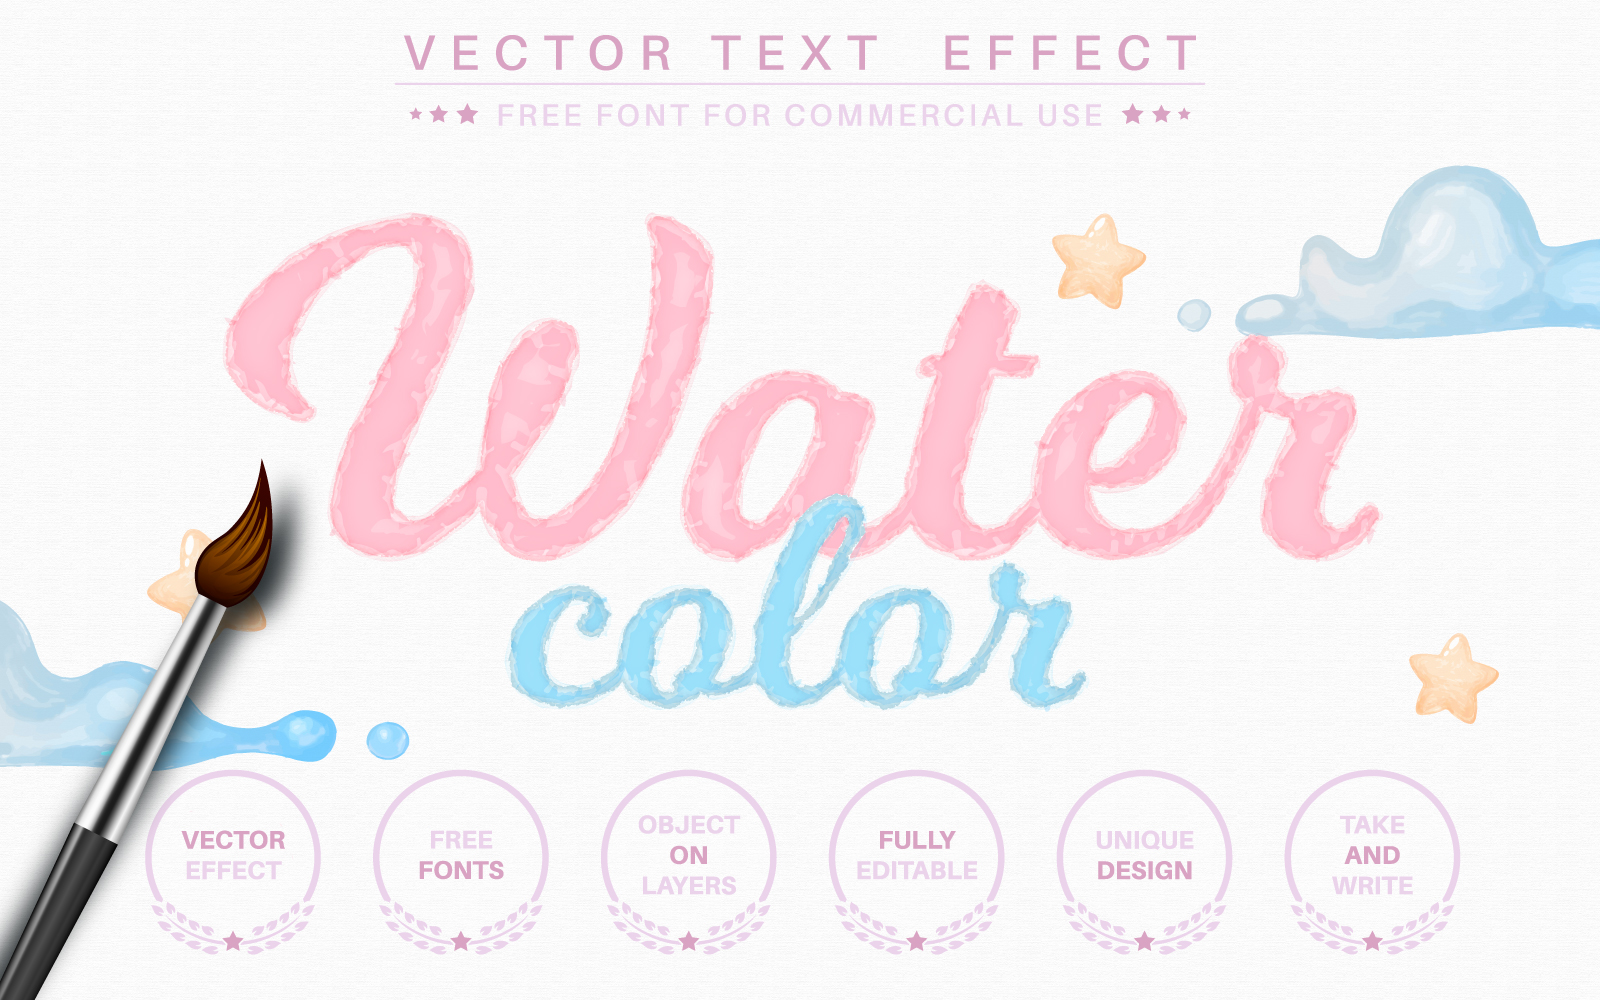 Watercolor - Editable Text Effect, Font Style Graphic Illustration